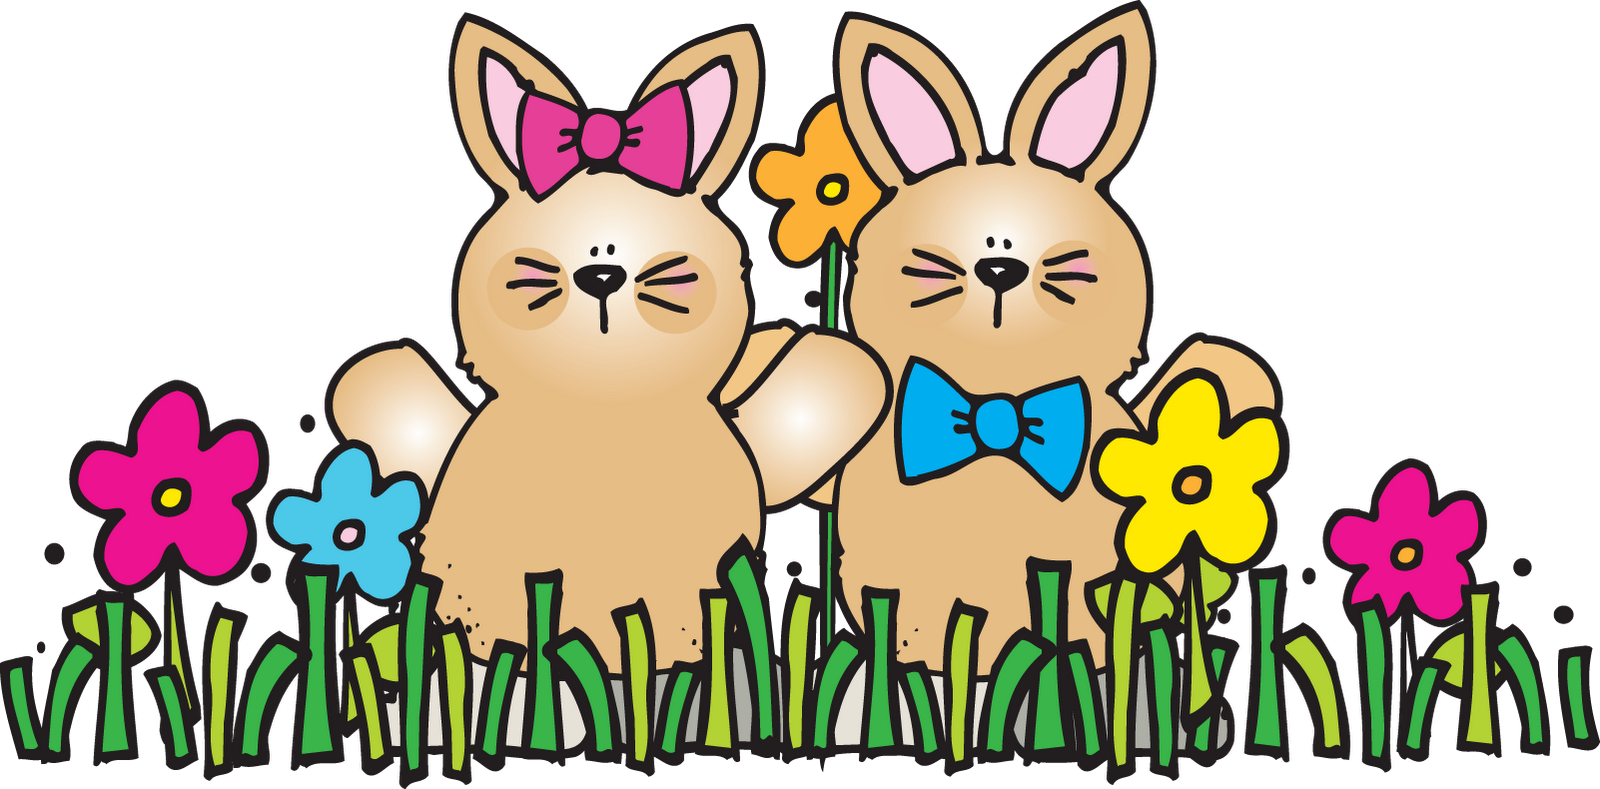 Kinderkids fun march is. Clipart reading easter